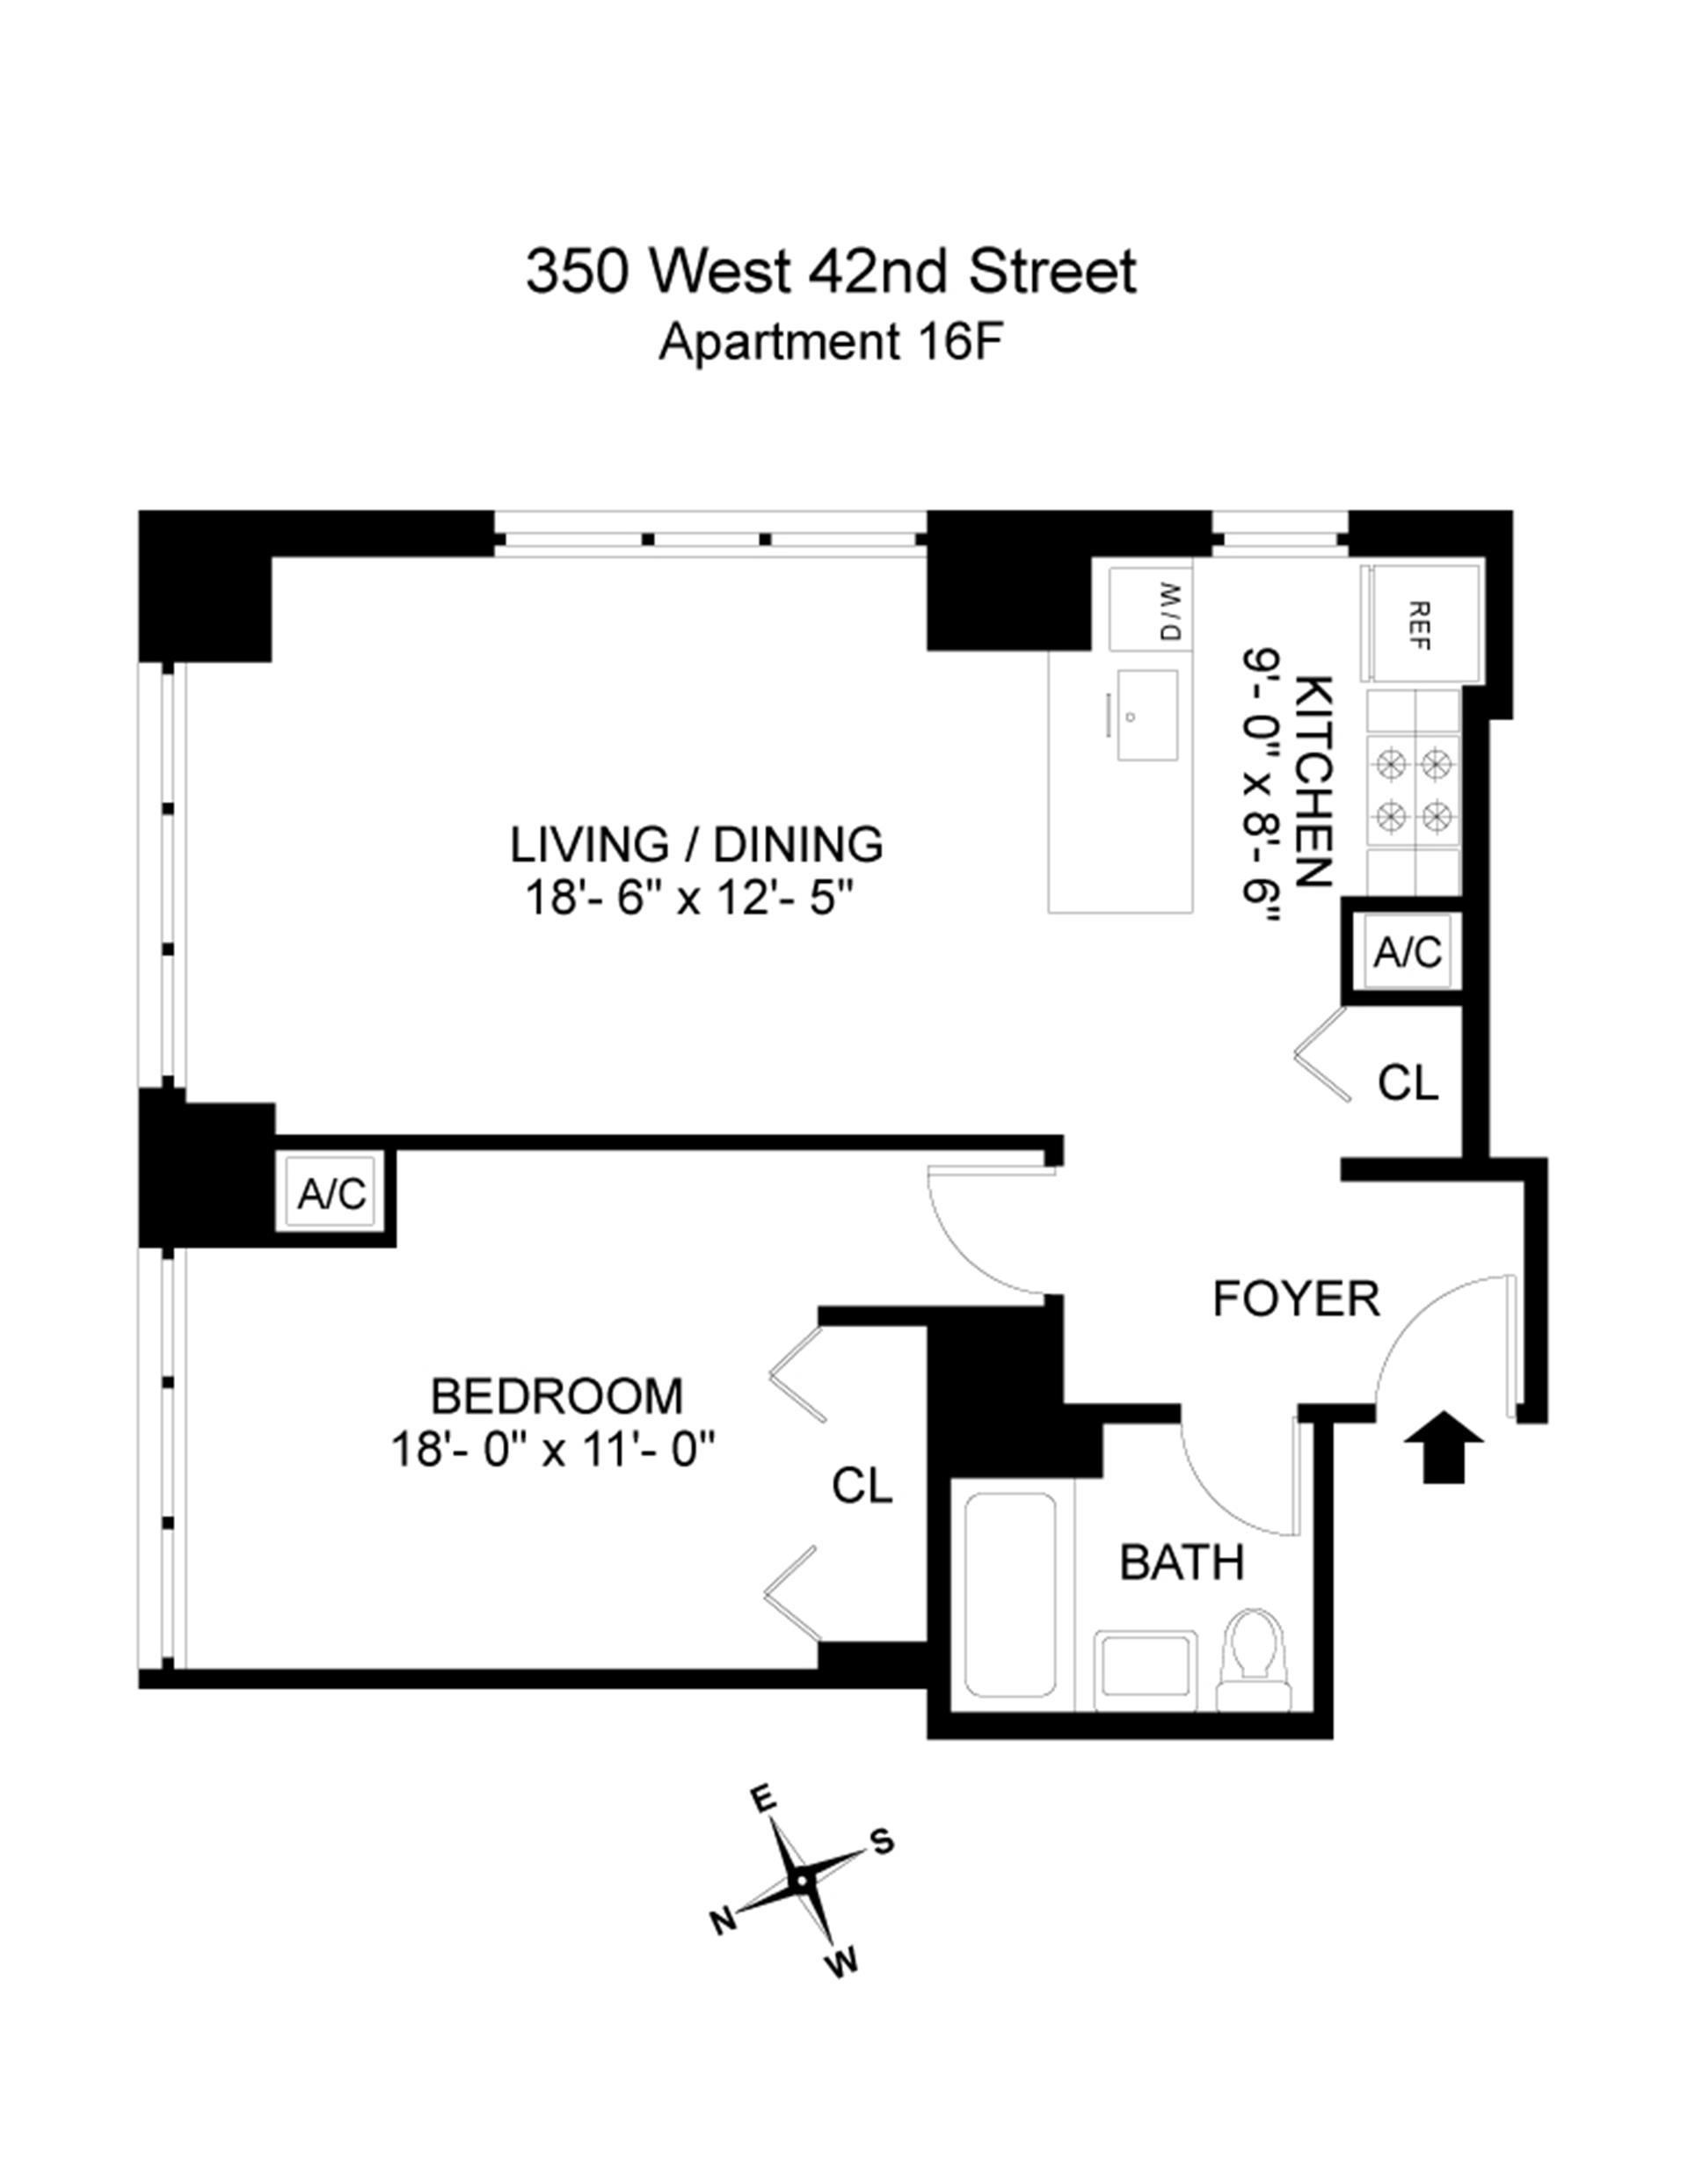 Floor plan of 350 West 42nd St, 16F - Clinton, New York